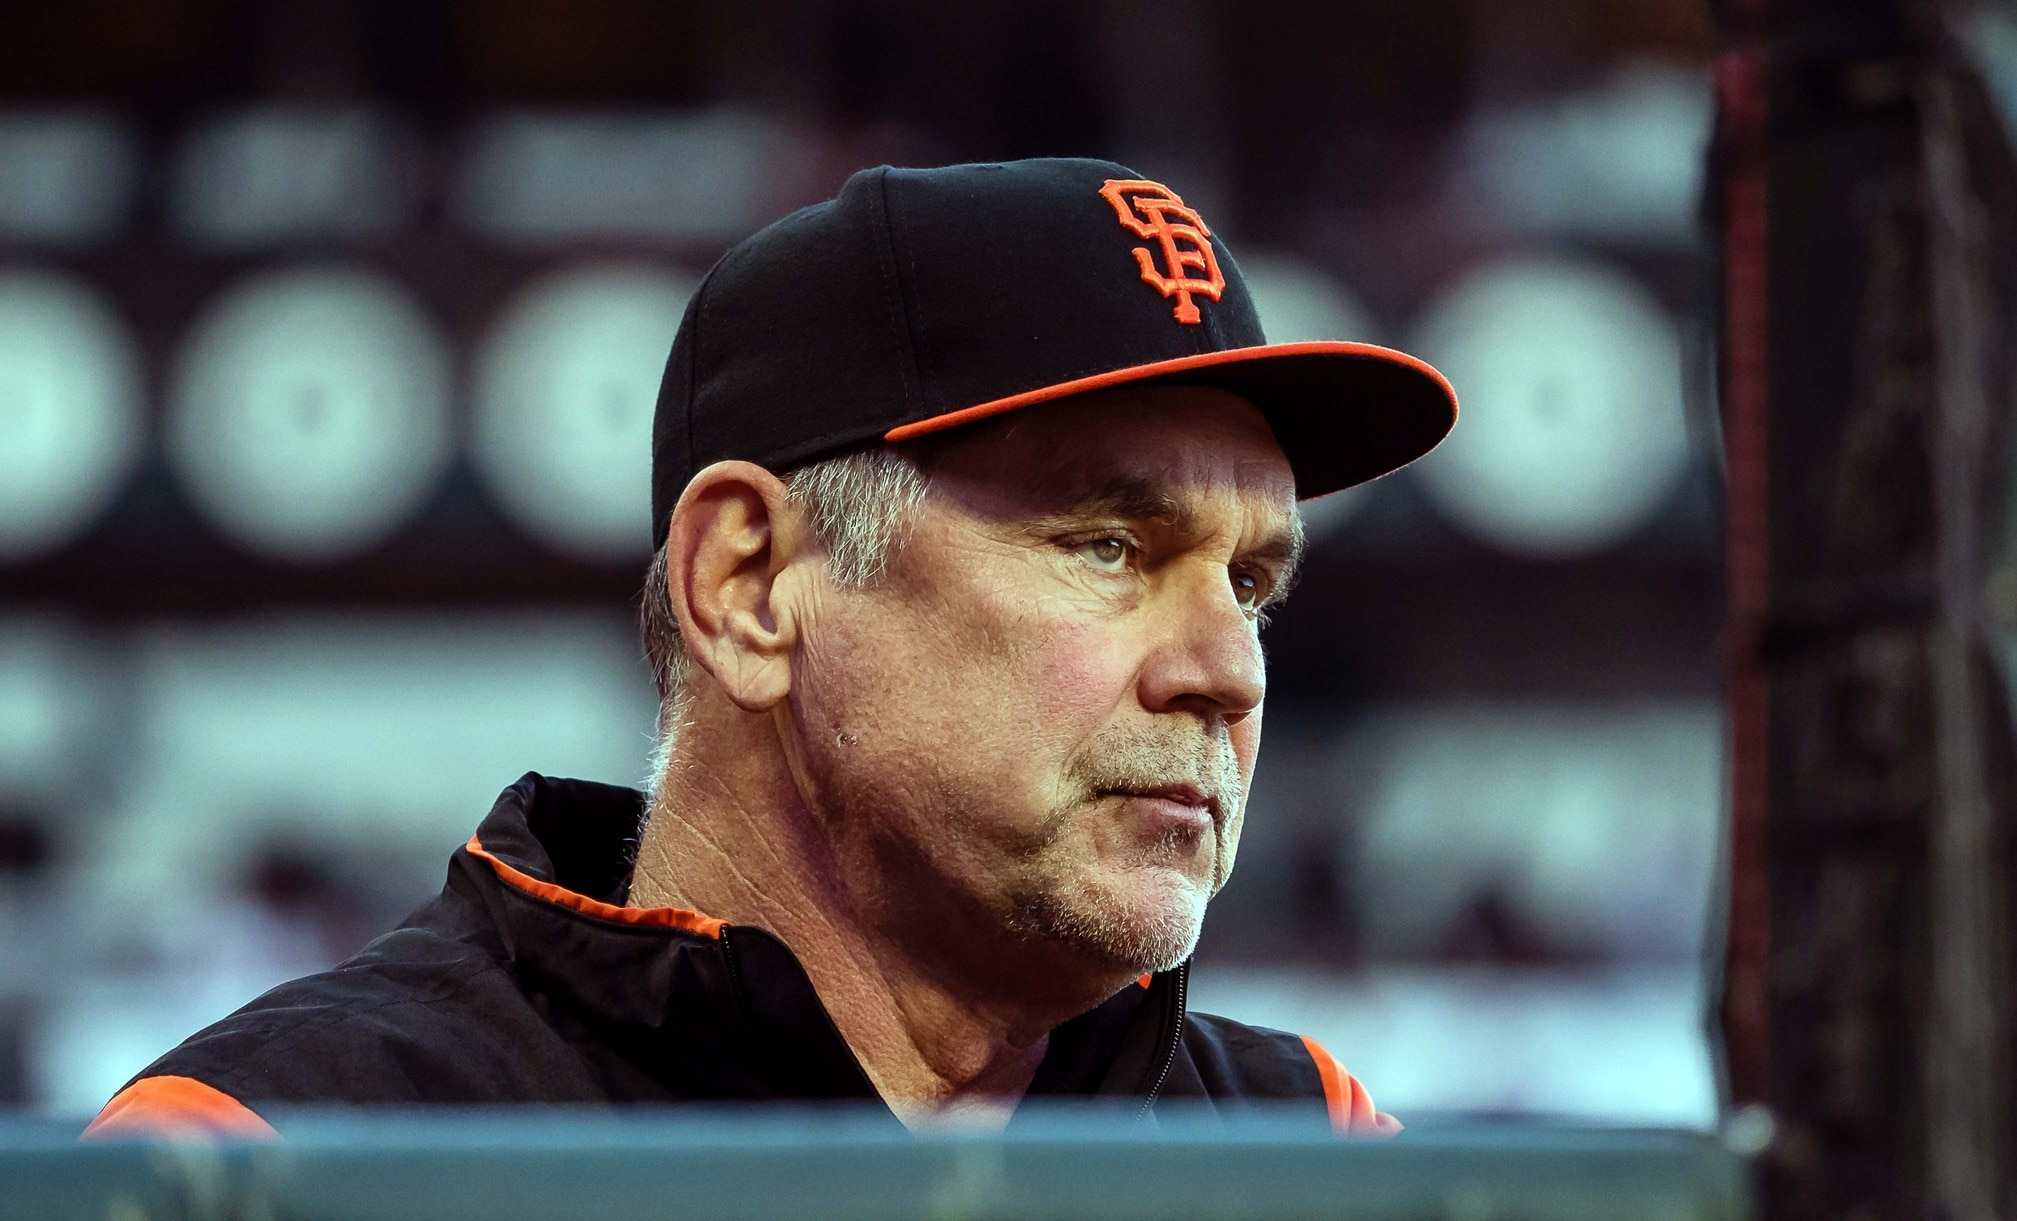 Caption: Apr 29, 2017; San Francisco, CA, USA; San Francisco Giants manager Bruce Bochy (15) in the dugout during the fifth inning against the San Diego Padres at AT&T Park. Mandatory Credit: Kelley L Cox-USA TODAY Sports